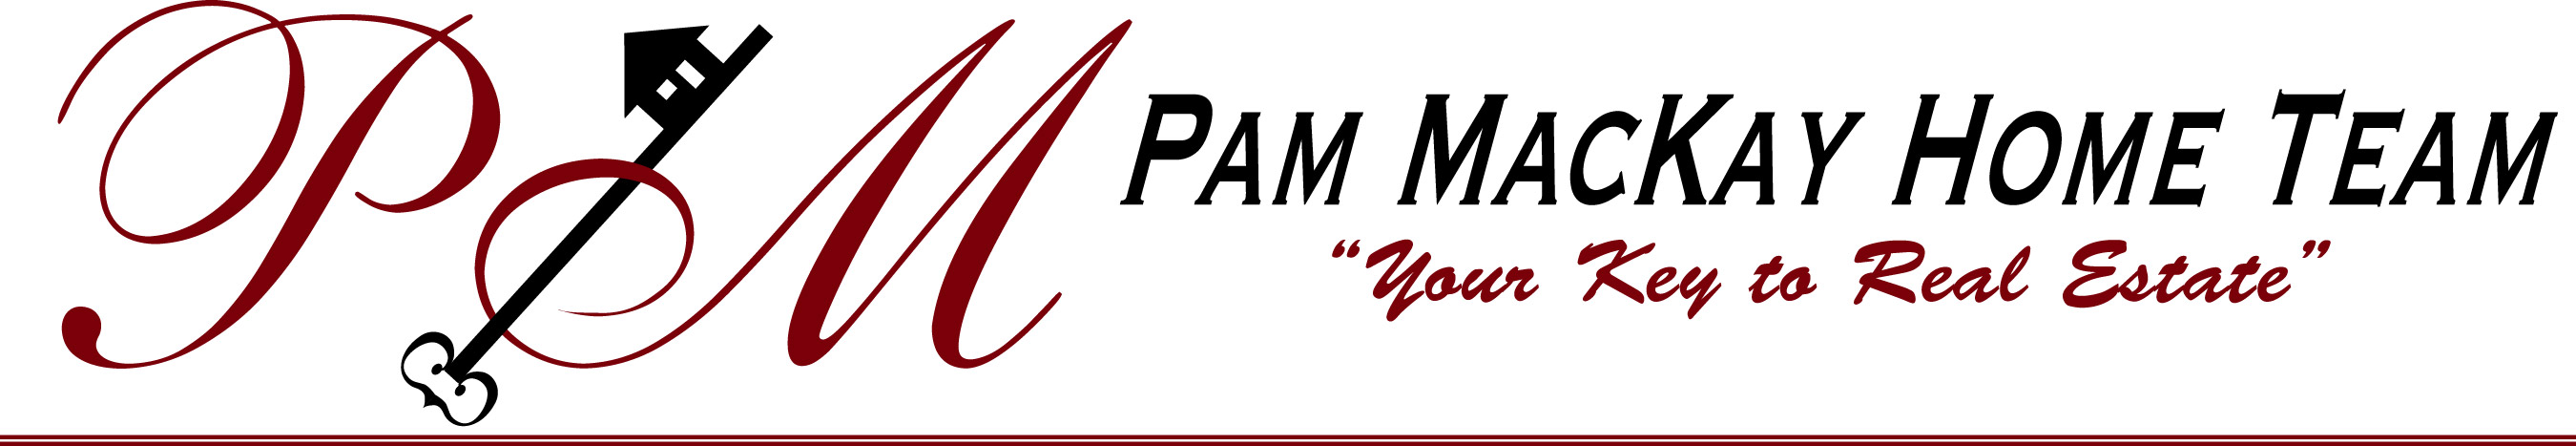 The Pam MacKay Home Team